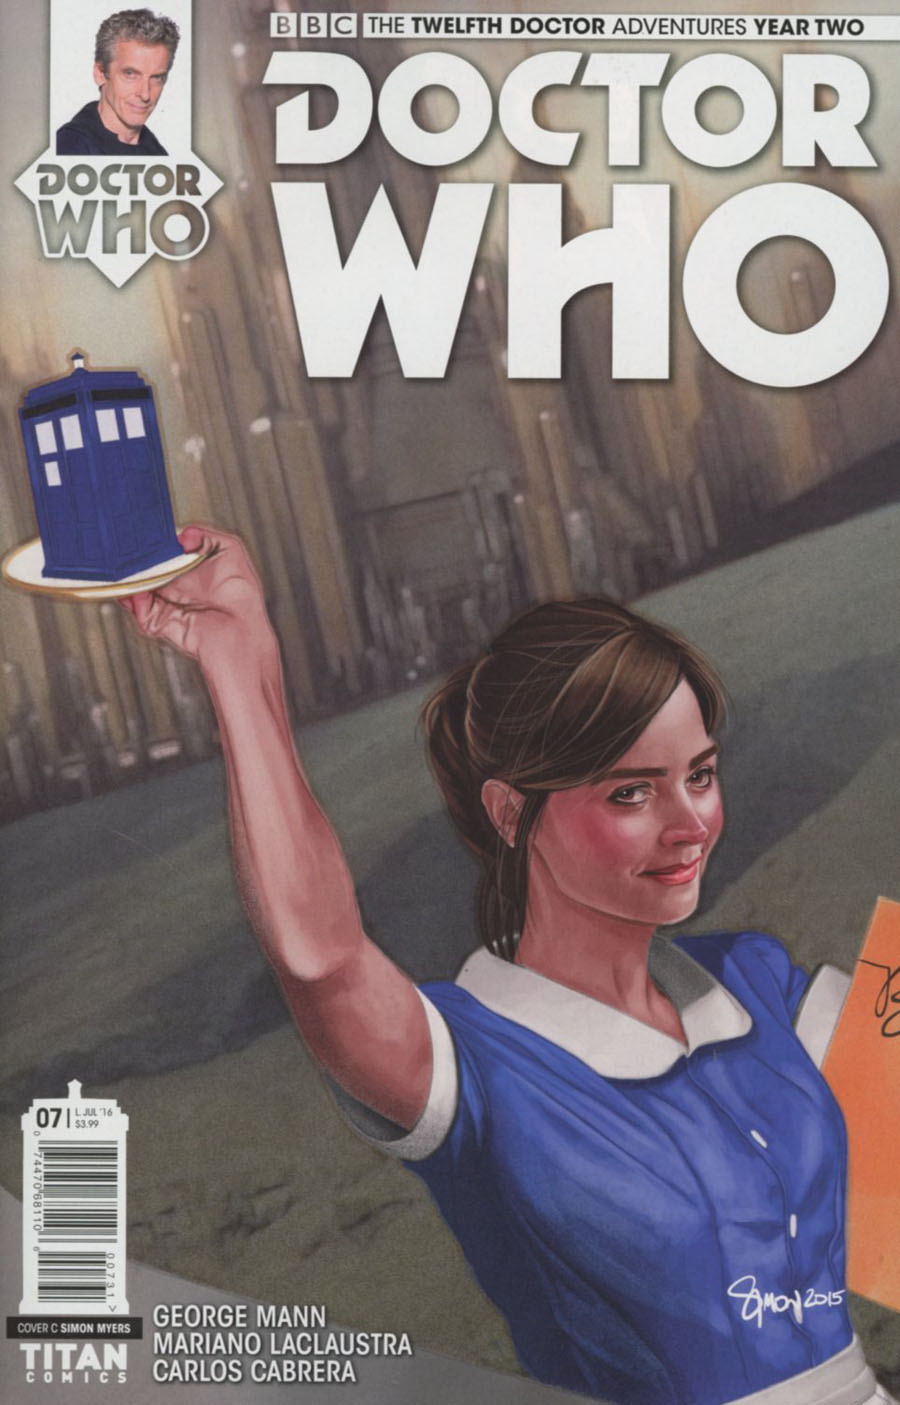 Doctor Who 12th Doctor Year Two #7 Cover C Variant Simon Myers Cover